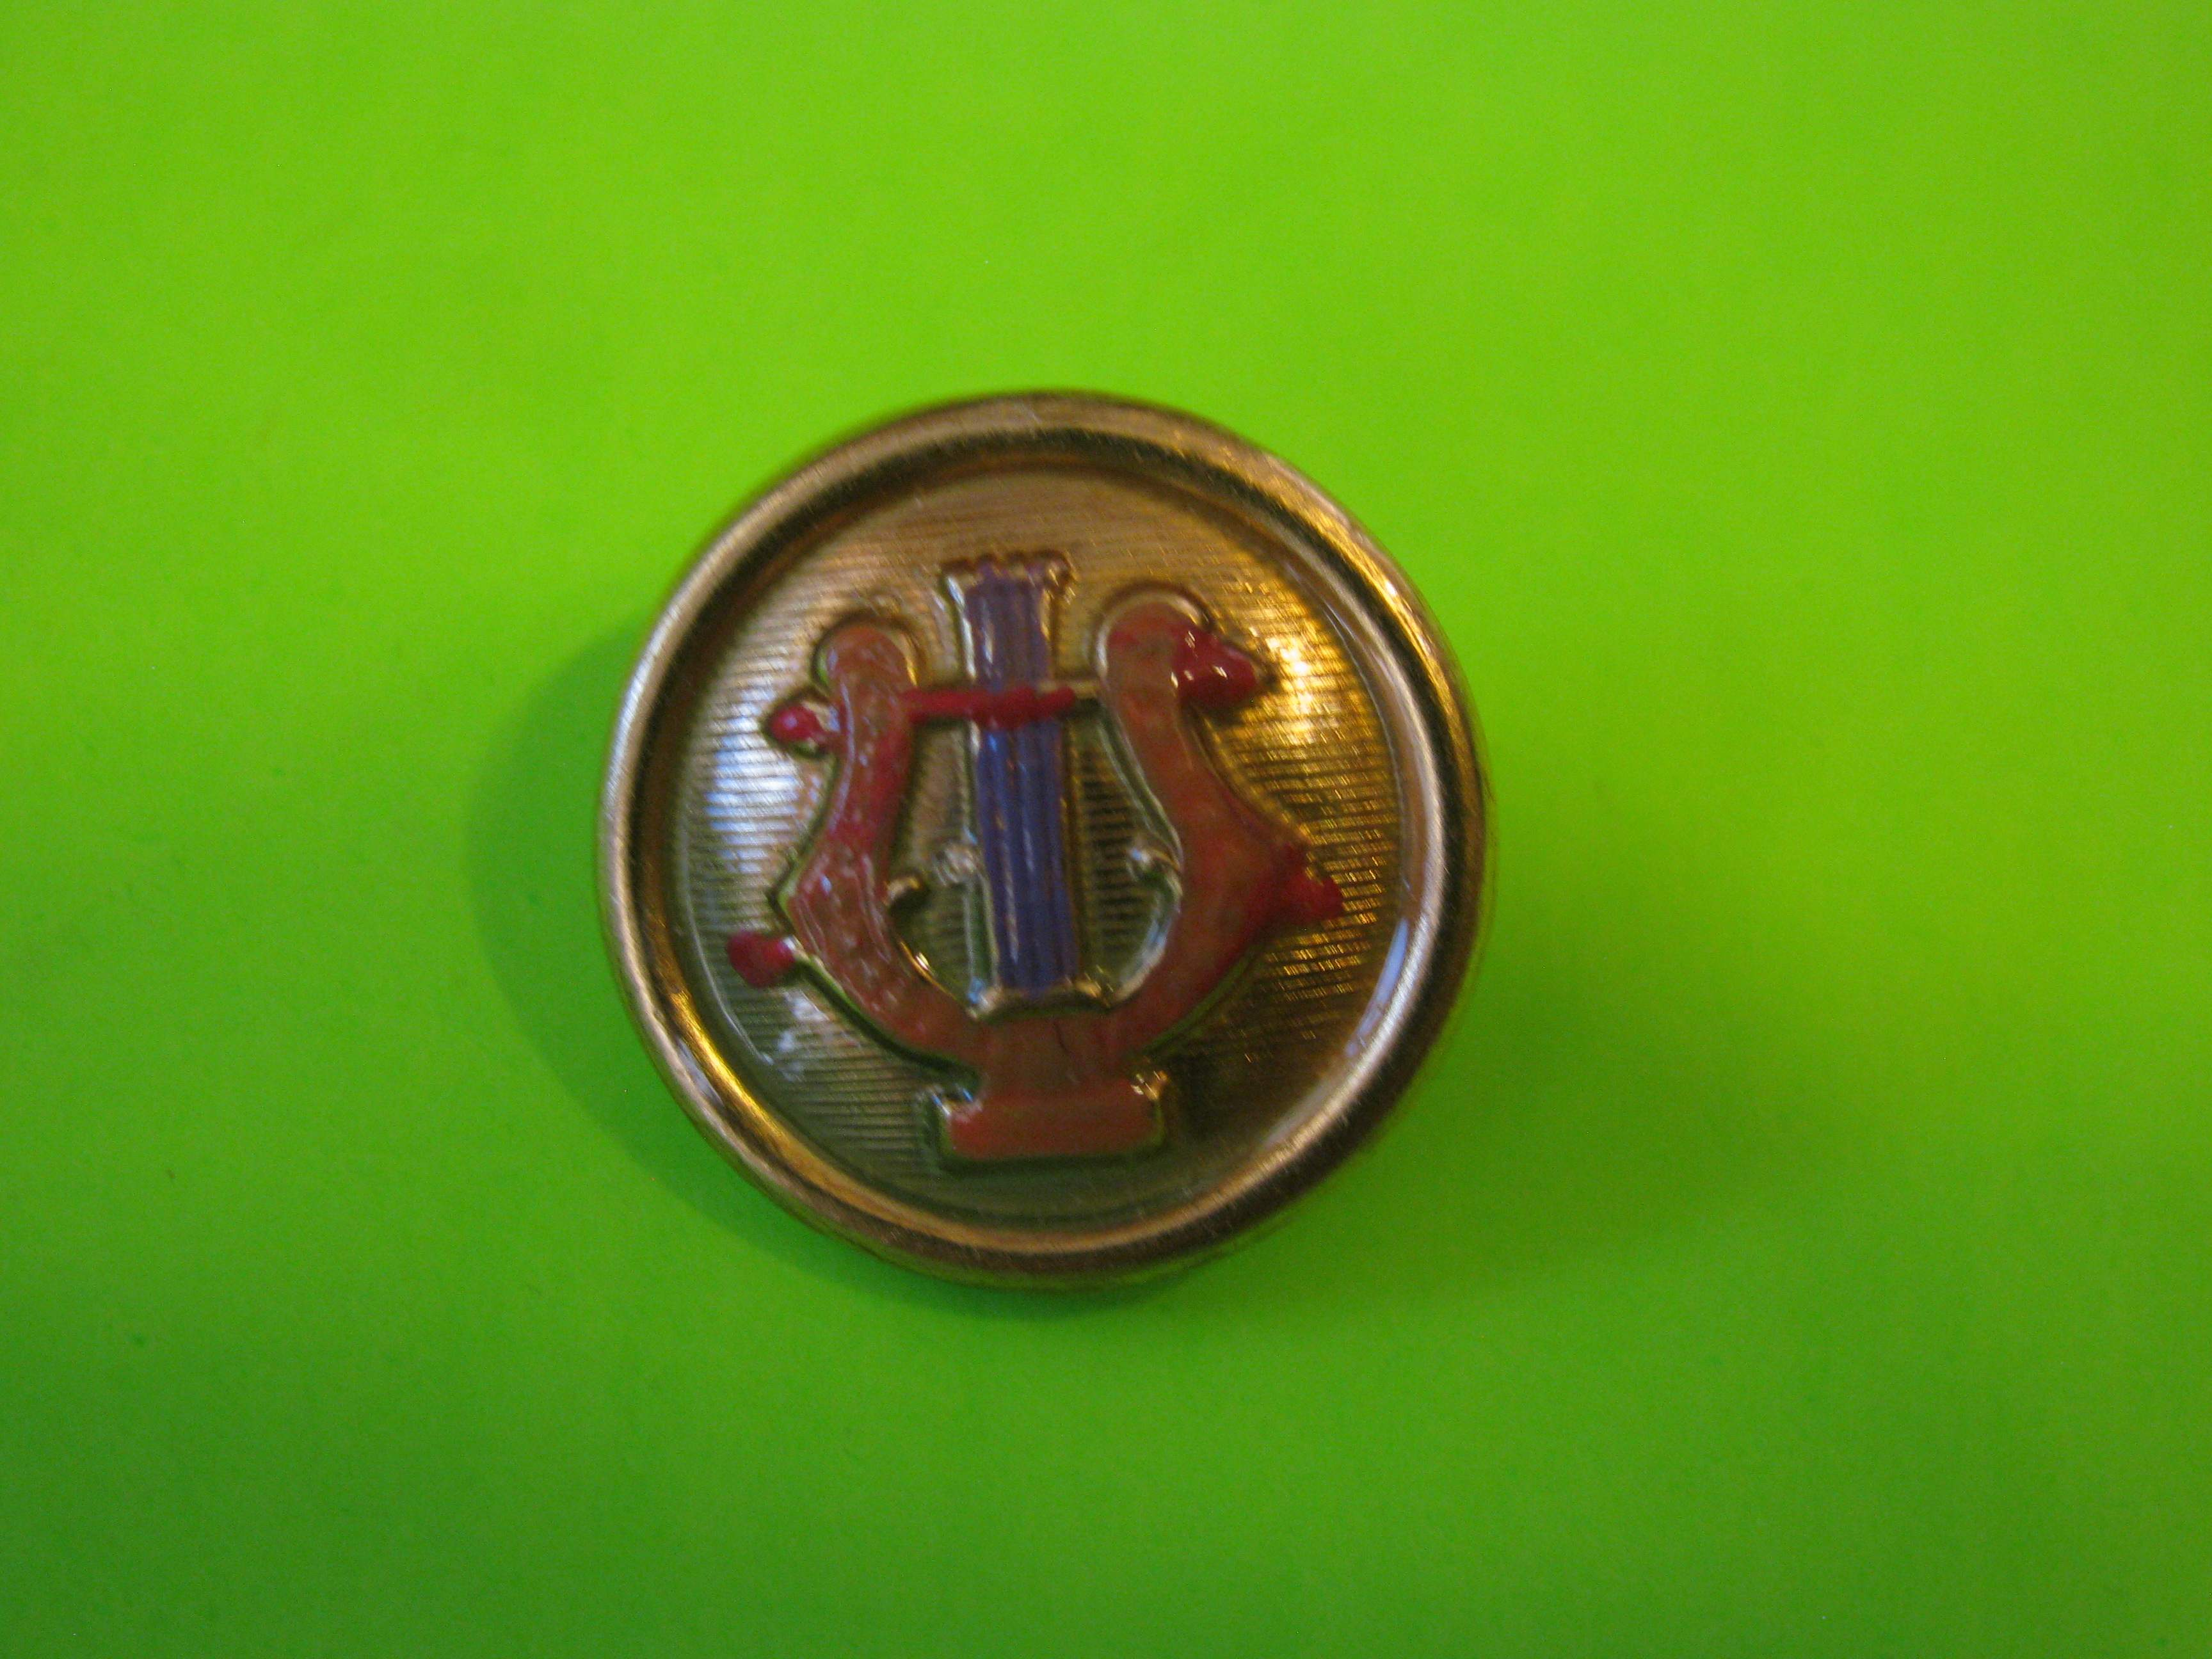 Decorative Colorful Harp on Metal Button with Metal Loop Shank